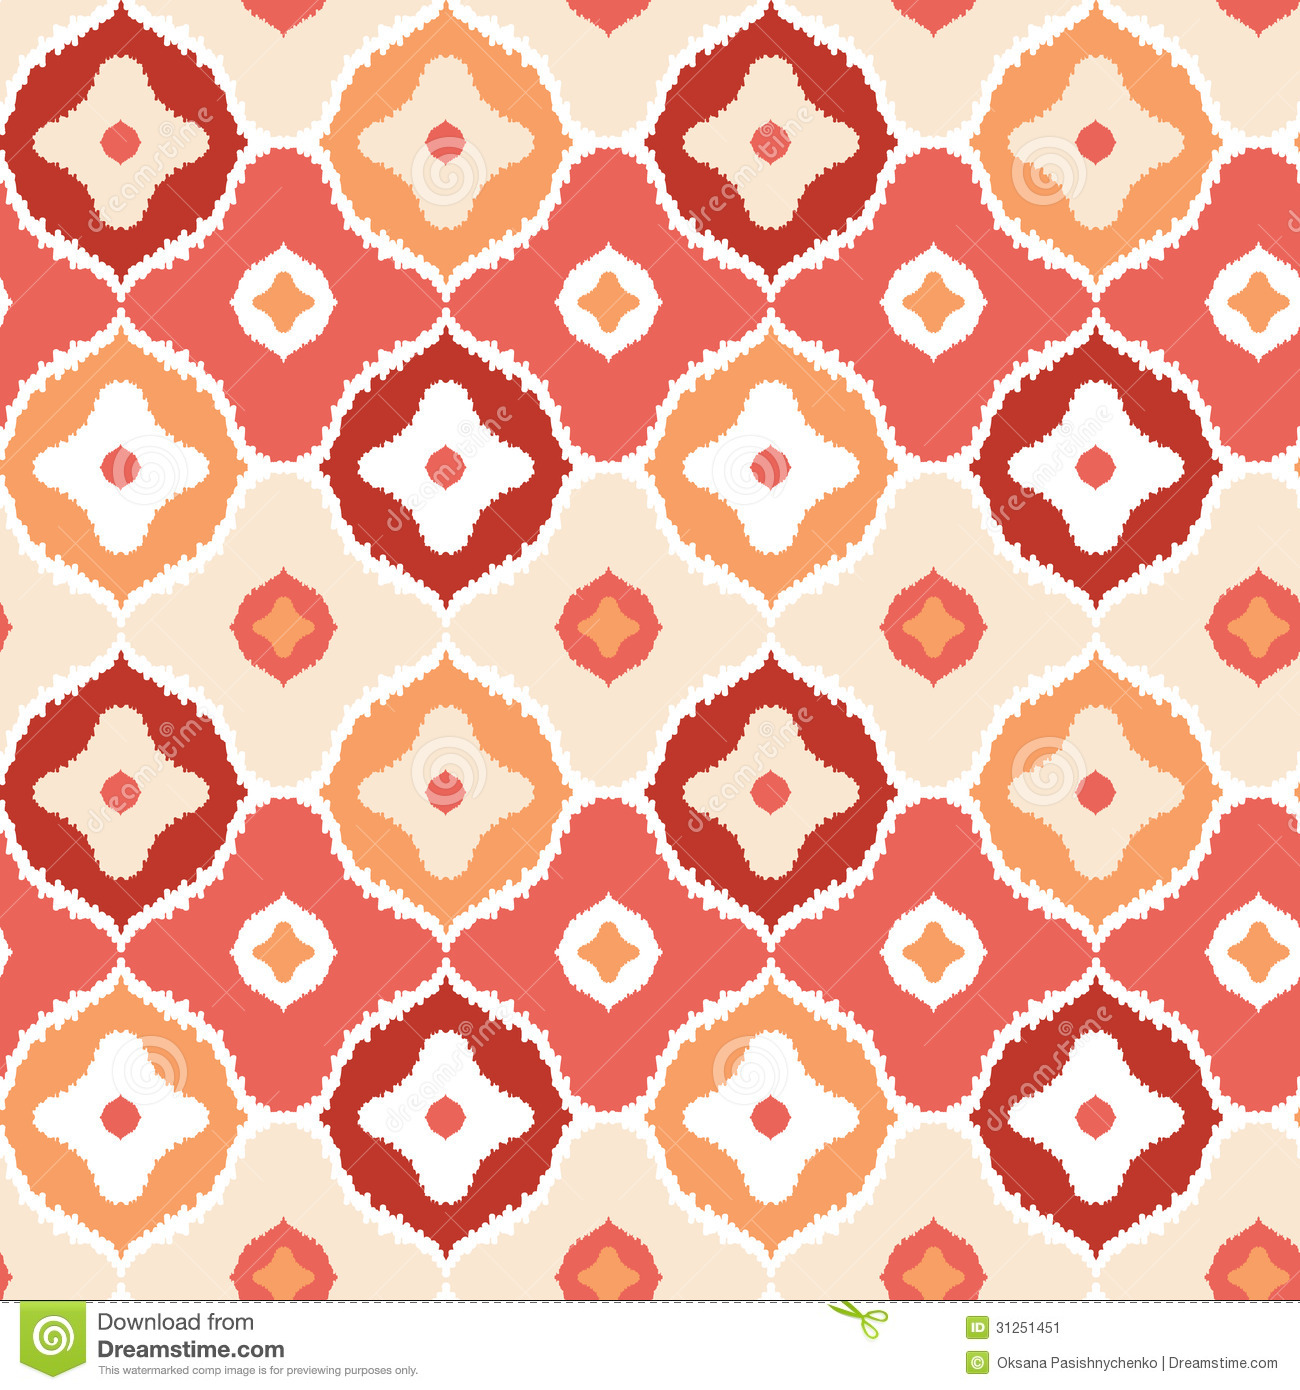 Golden ikat geometric seamless pattern background stock - Ikat muster ethno design ...